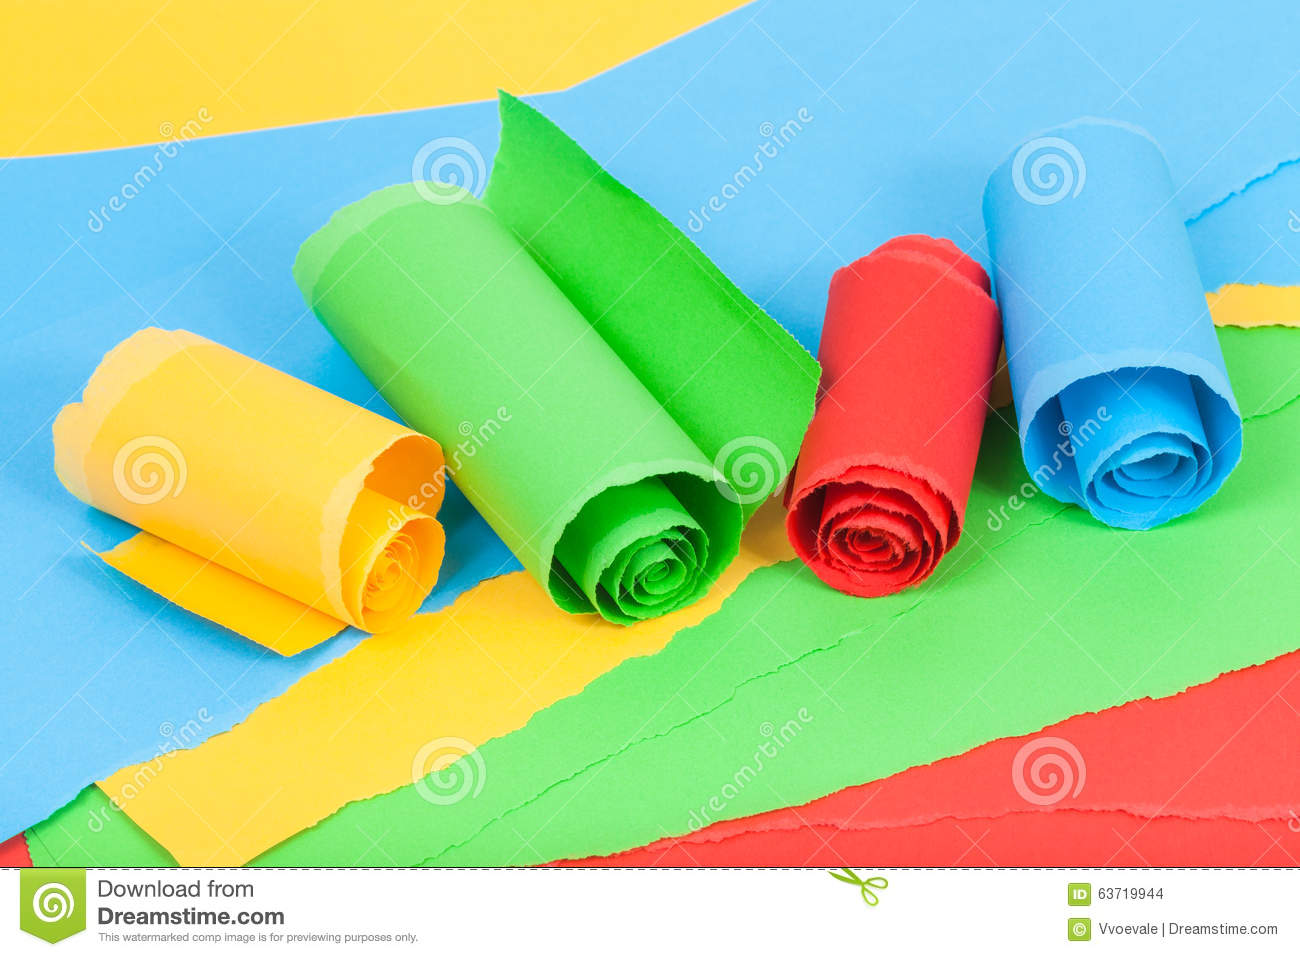 Rolled Colour Paper On Sheets Of Torn Paper Stock Photo - Image of ...